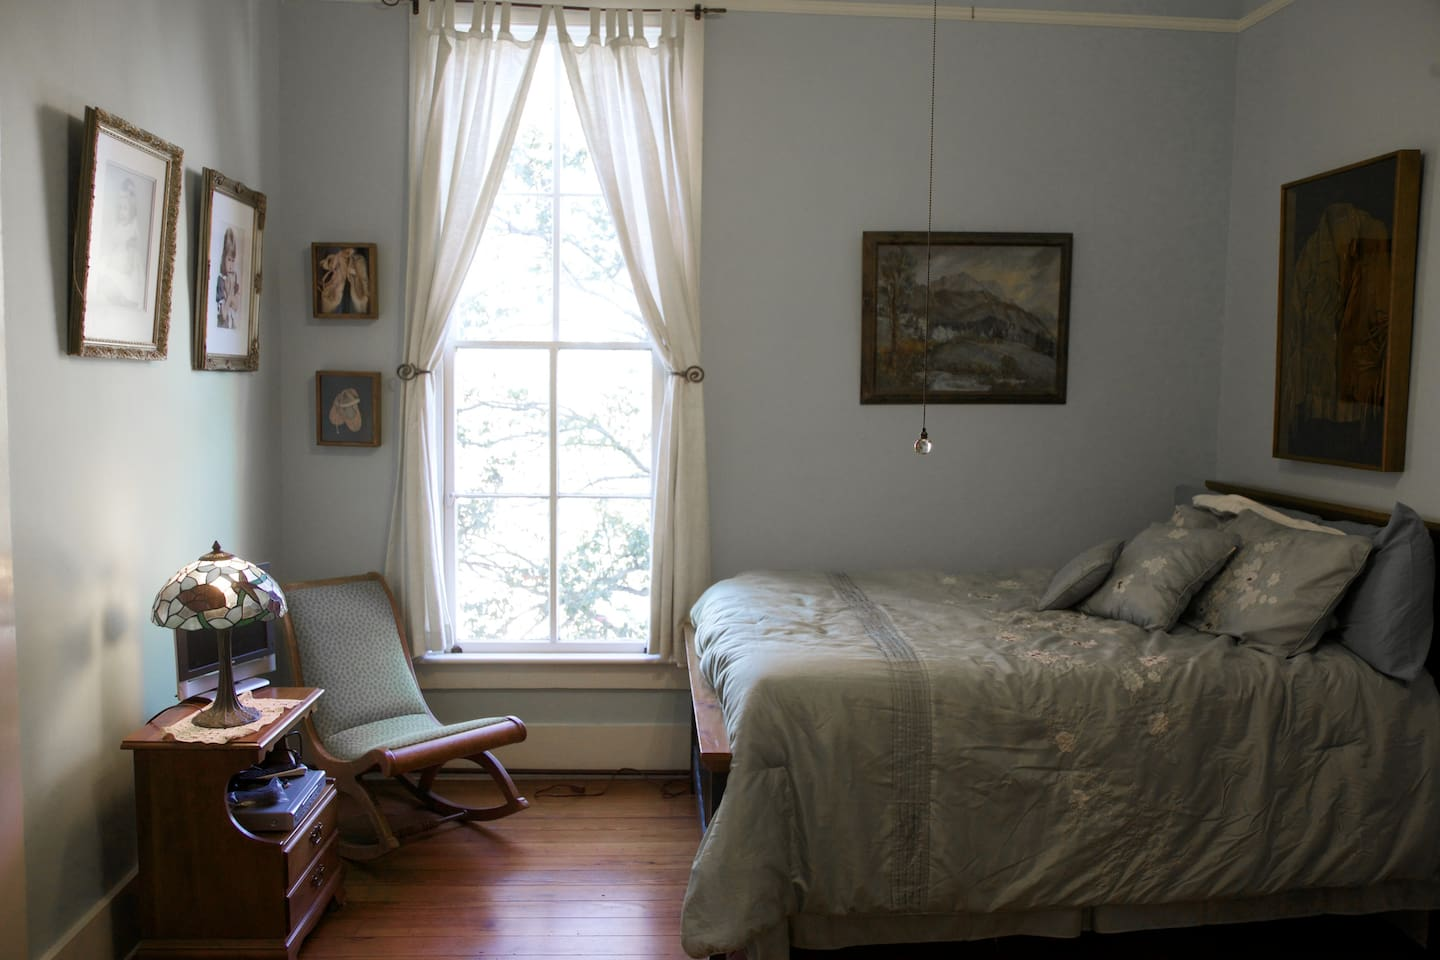 Natalie's Room has a full sized bed and serene furnishings.